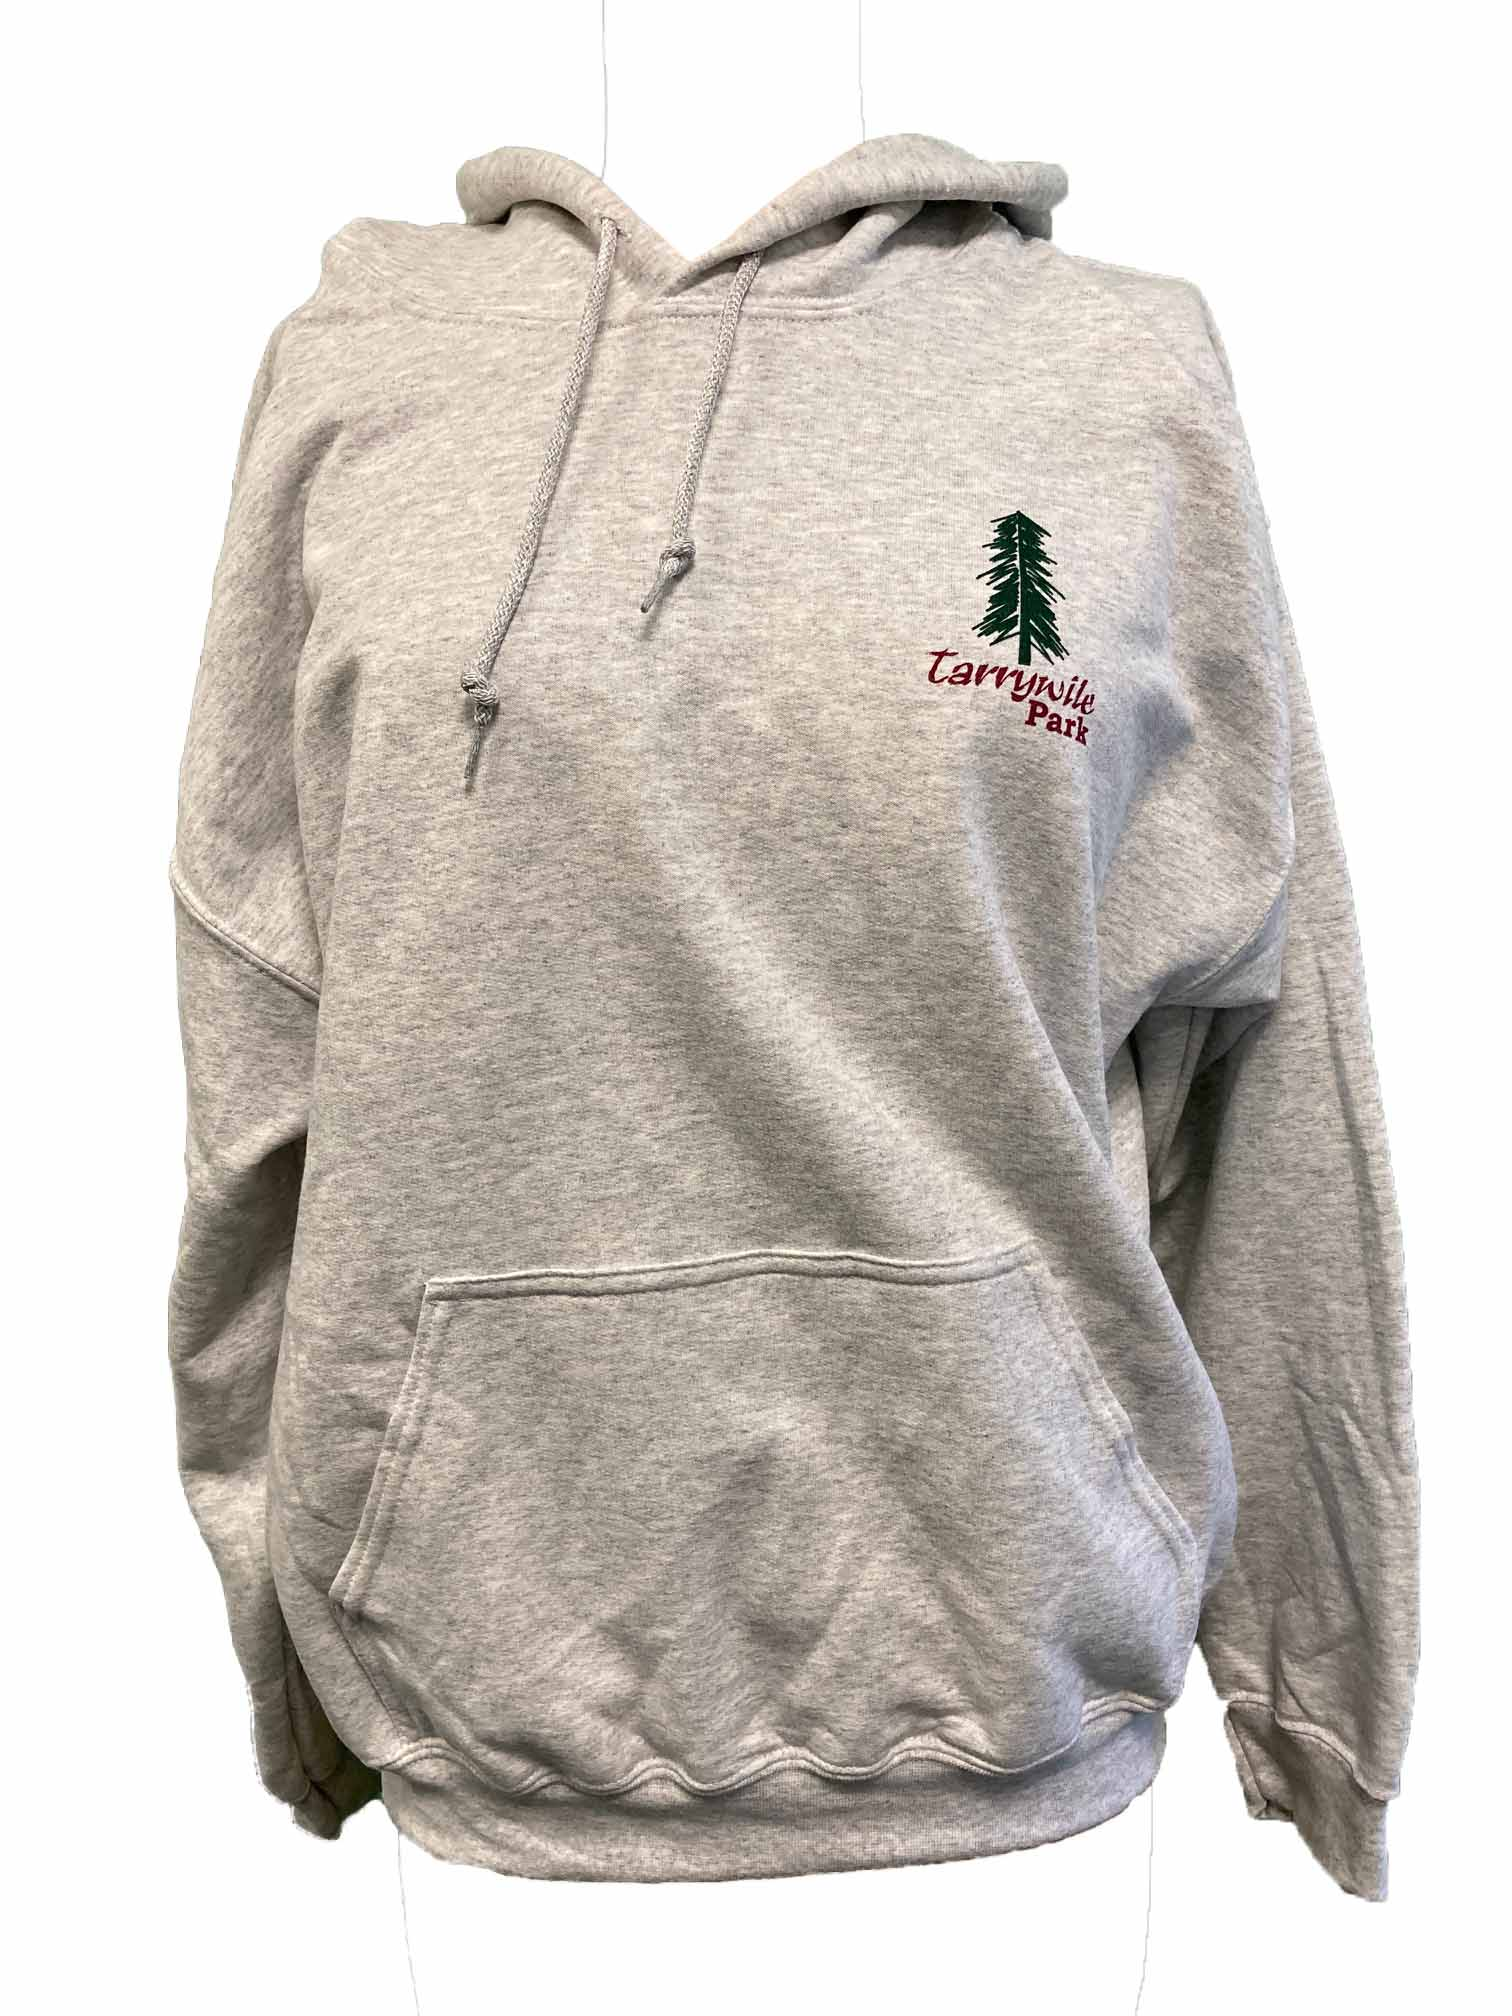 tarrywile park hooded sweatshirt with tree logo